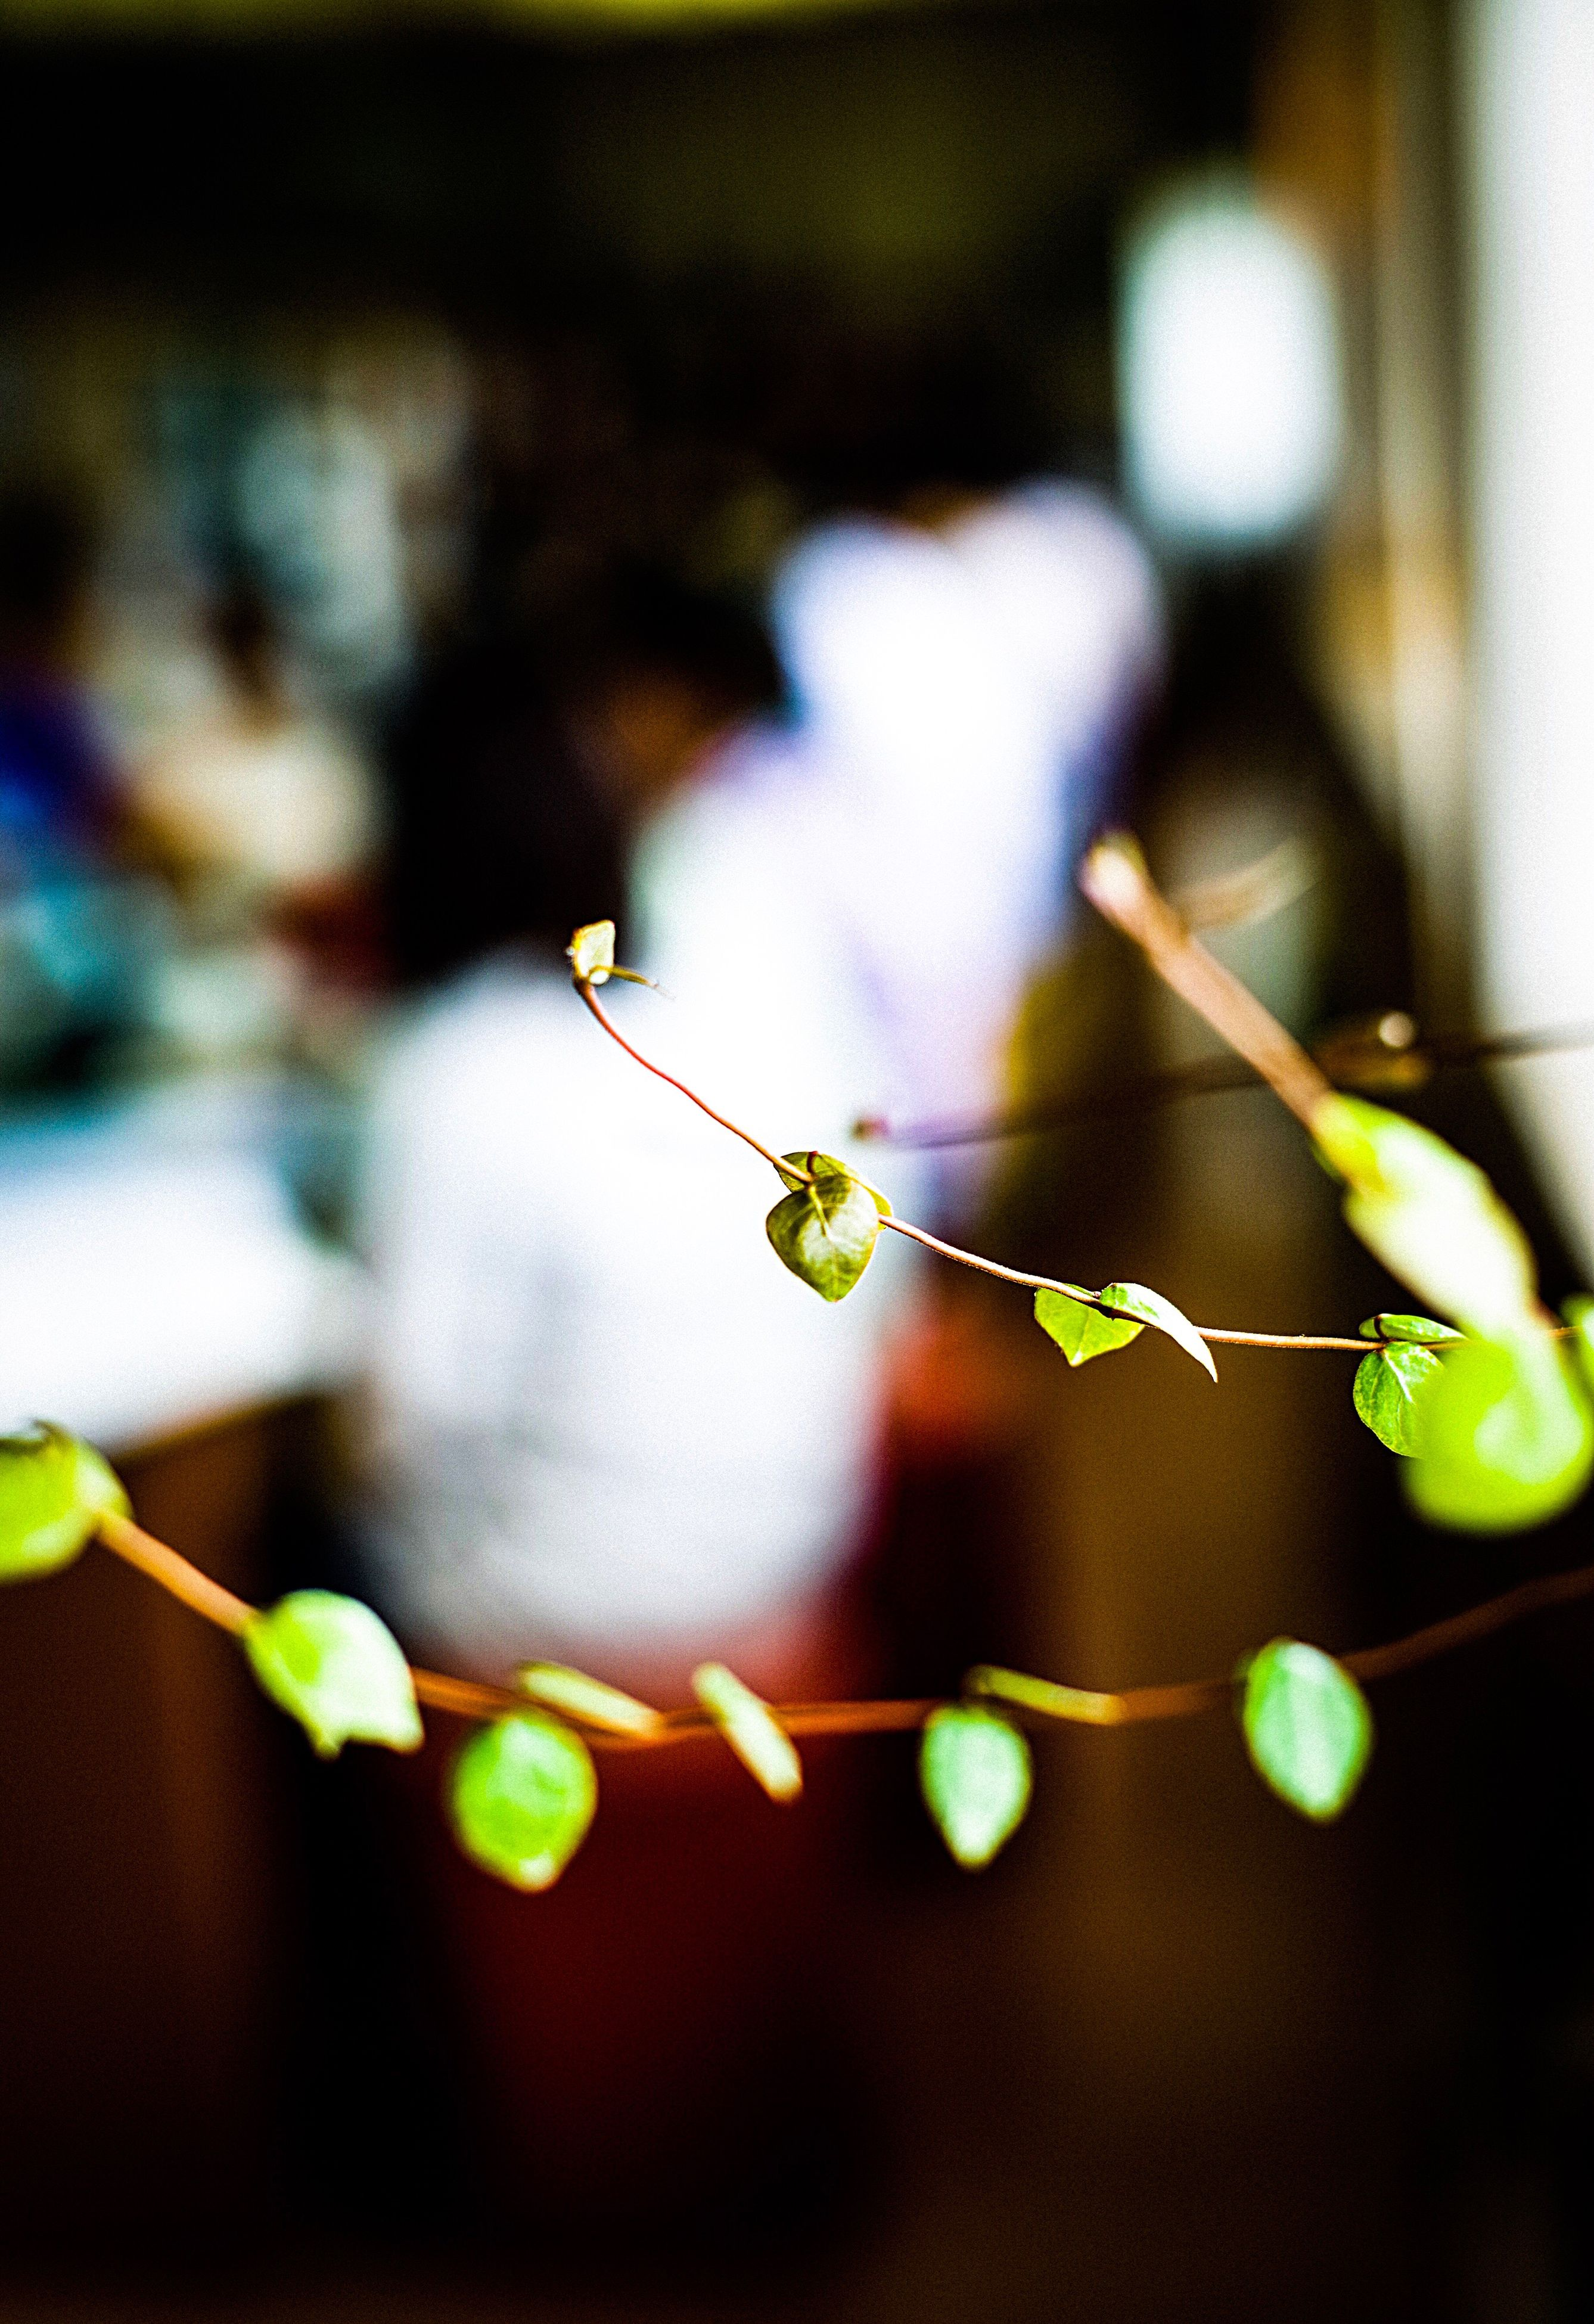 focus on foreground, growth, nature, close-up, plant, no people, fragility, outdoors, insect, beauty in nature, day, freshness, animal themes